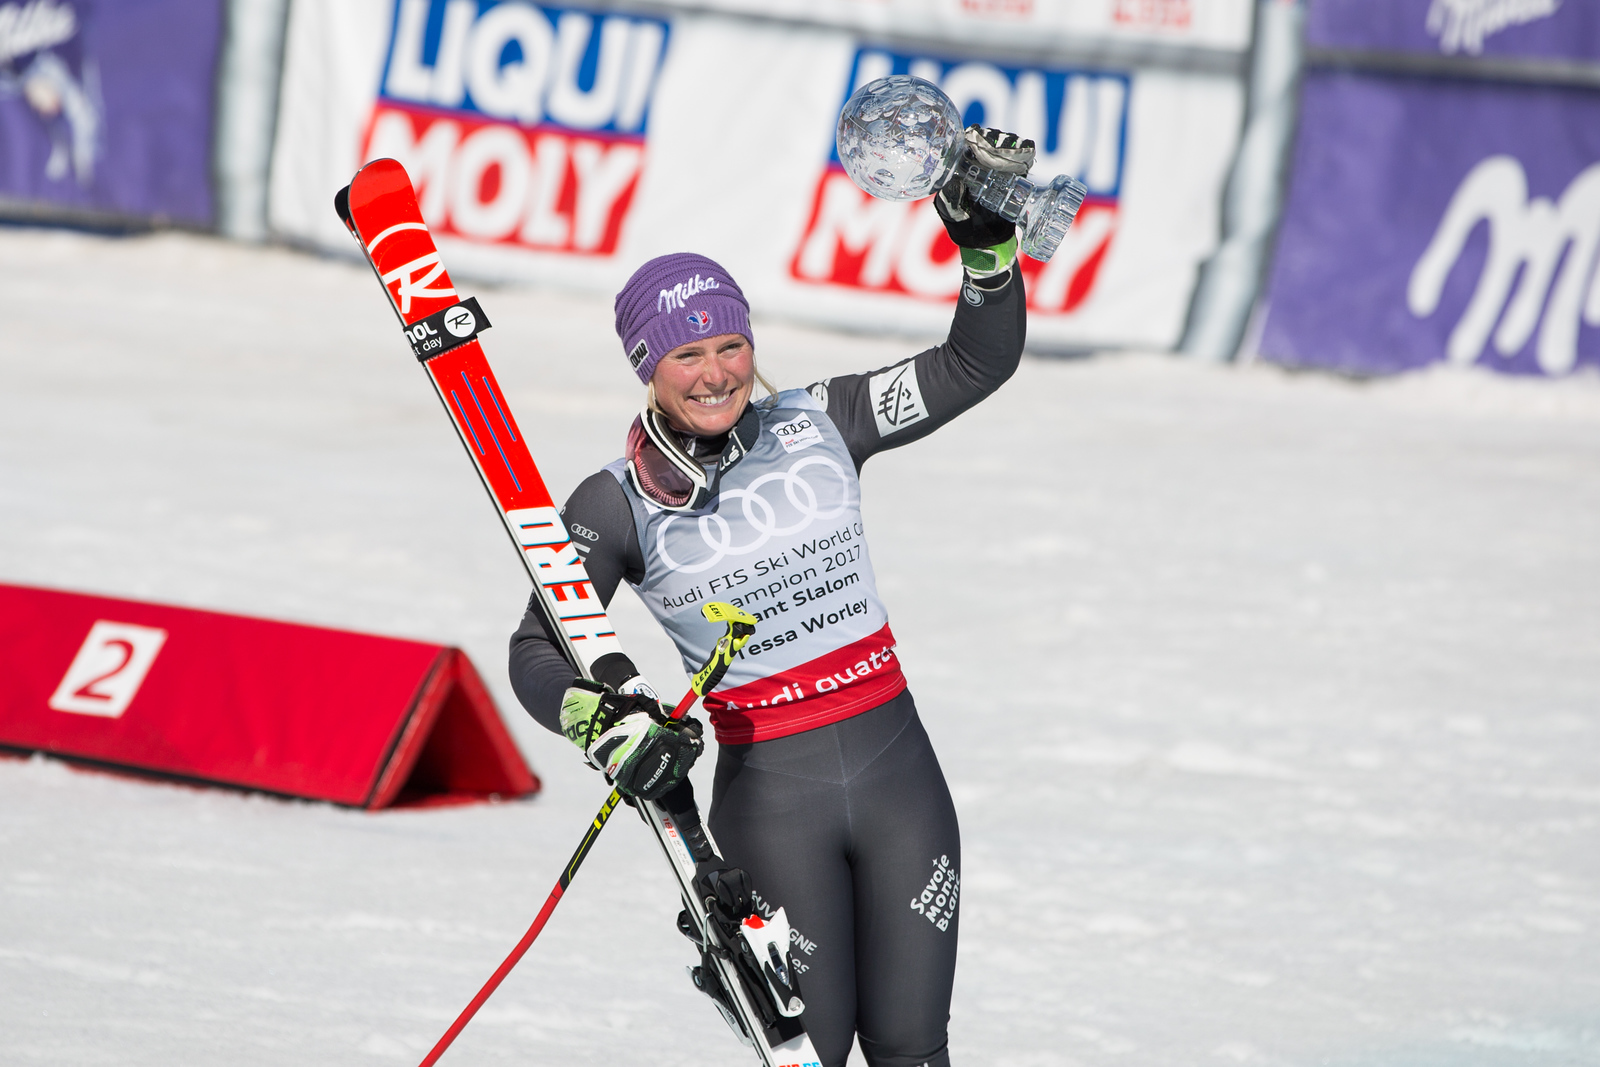 Tessa Worley GS 2017 Audi FIS Ski World Cup finals in Aspen, CO. Photo: U.S. Ski Team